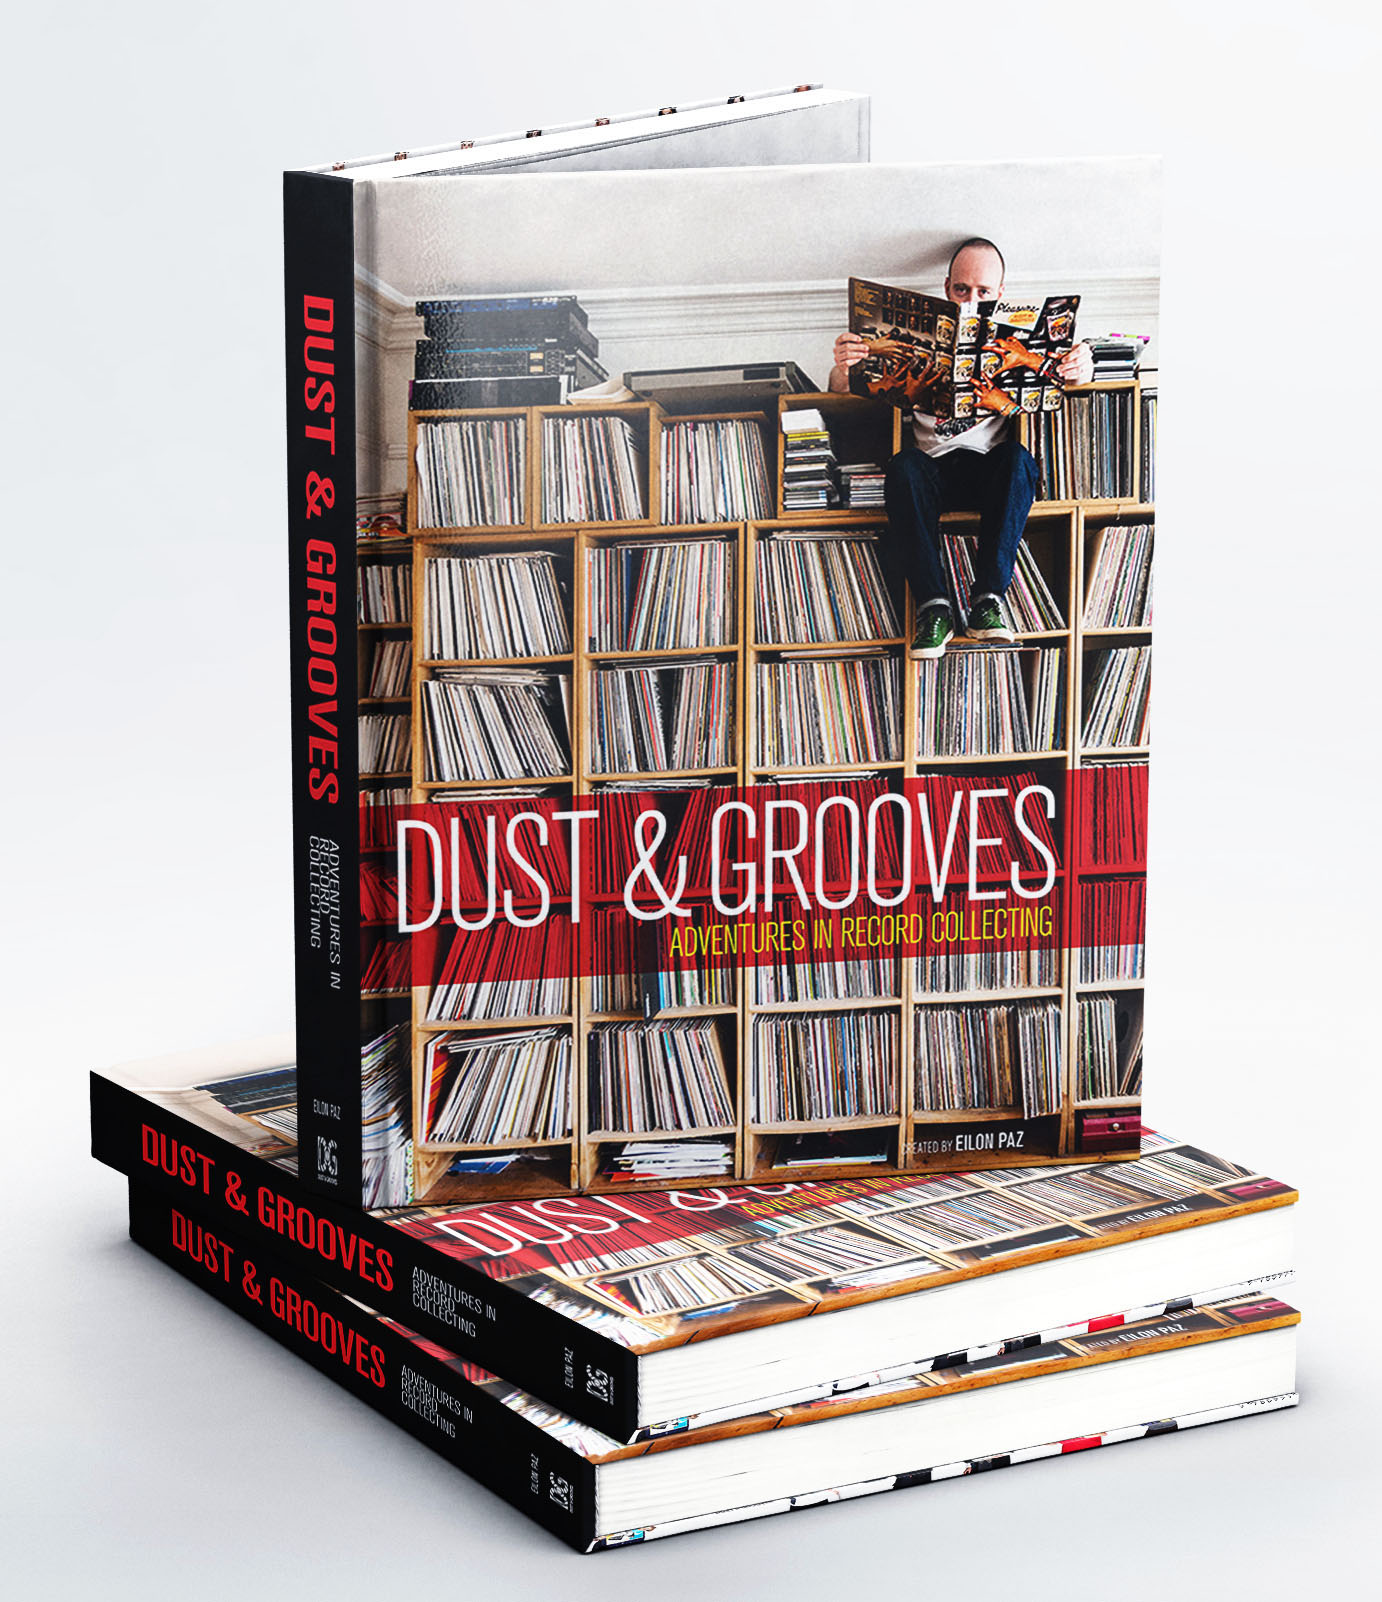 Dust & Grooves: Adventures in Record Collecting: DG_Book_Product_001.jpg